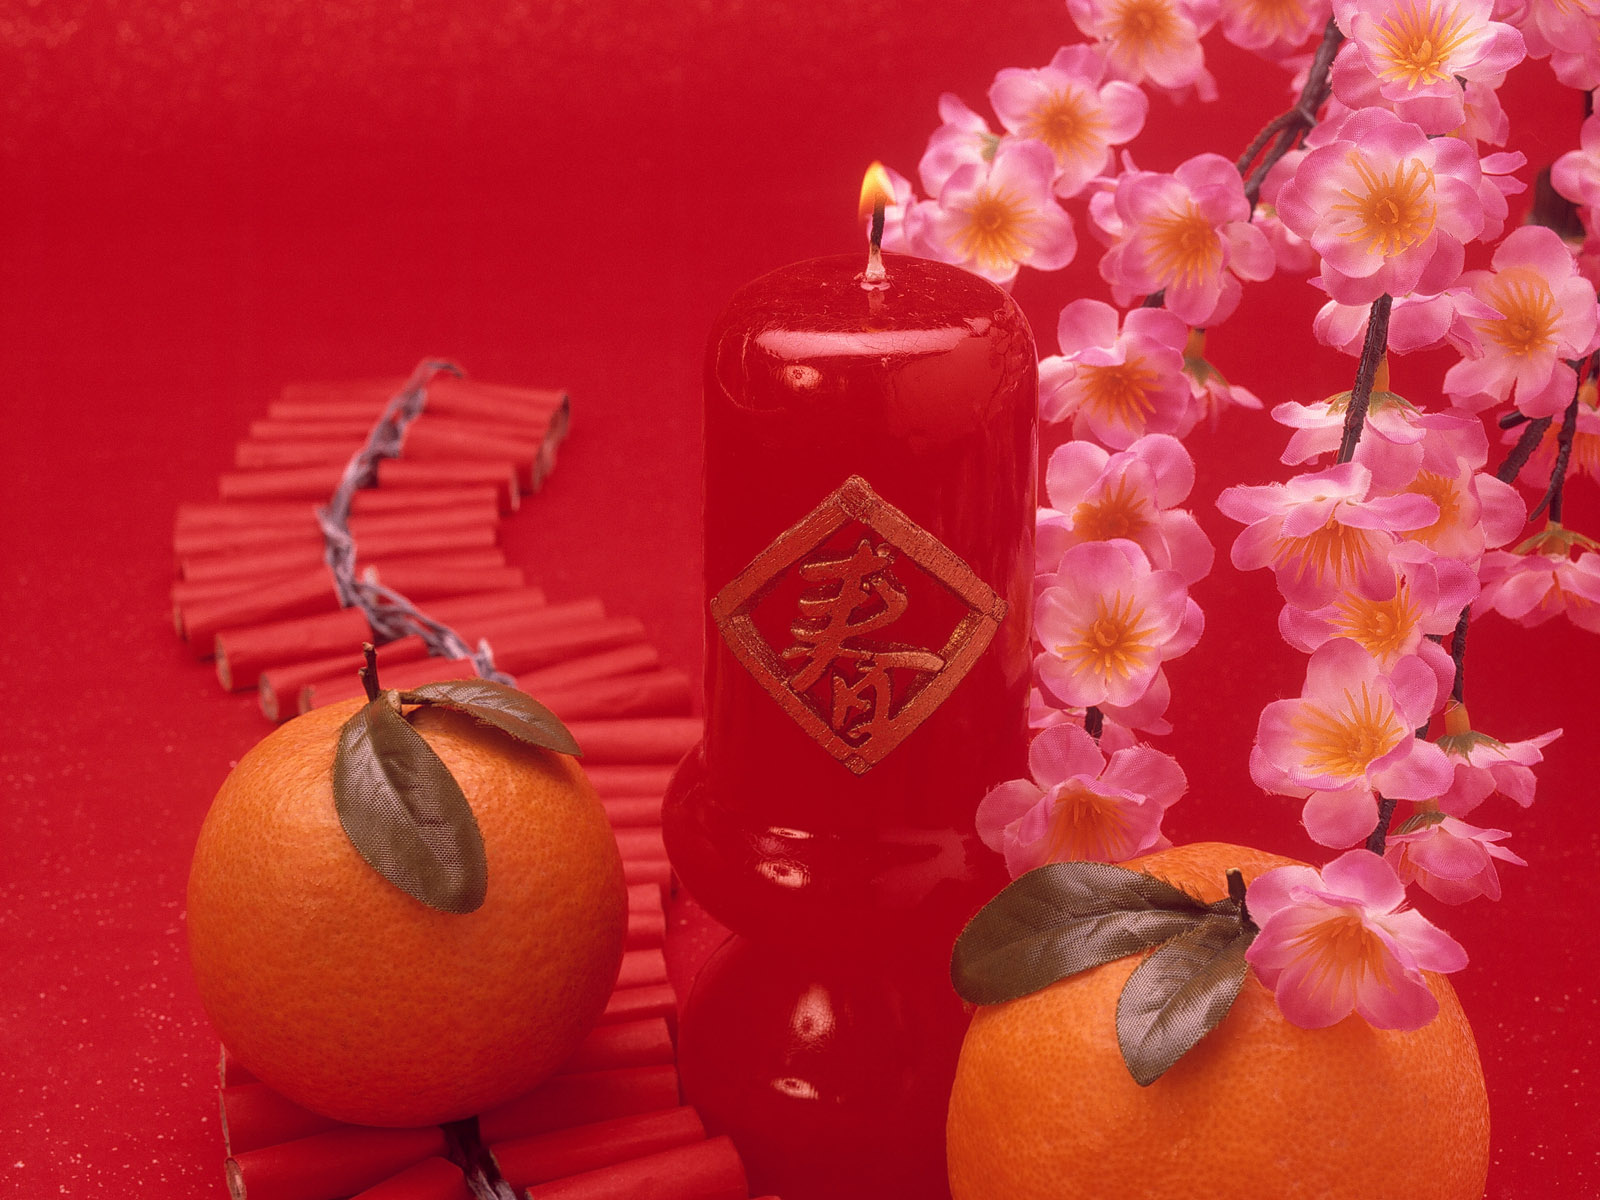 Chinese Culture 11342